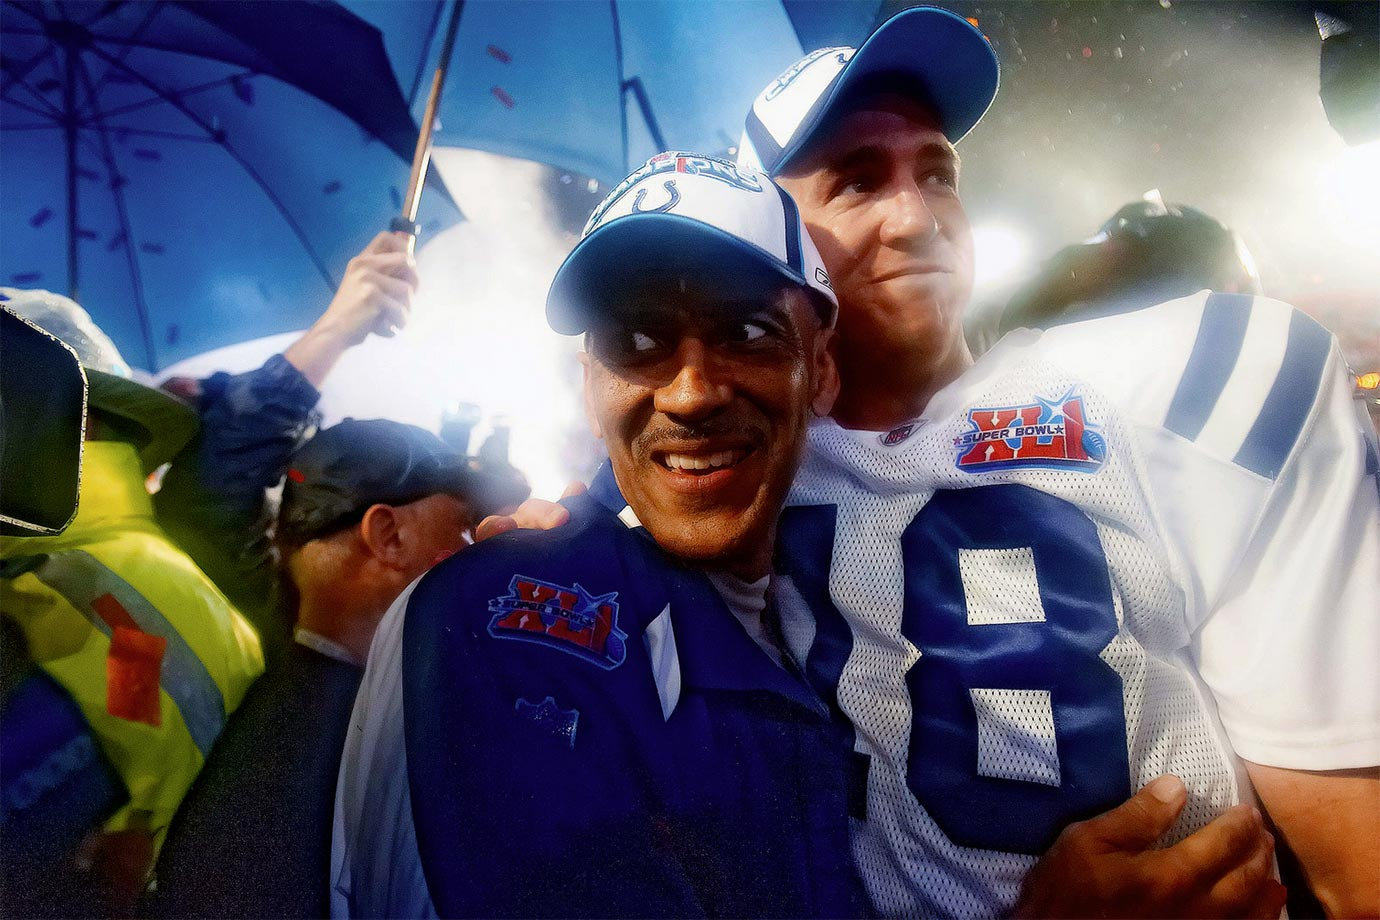 Indianapolis Colts head coach Tony Dungy and quarterback Peyton Manning smile together after defeating the Chicago Bears, 29-17.